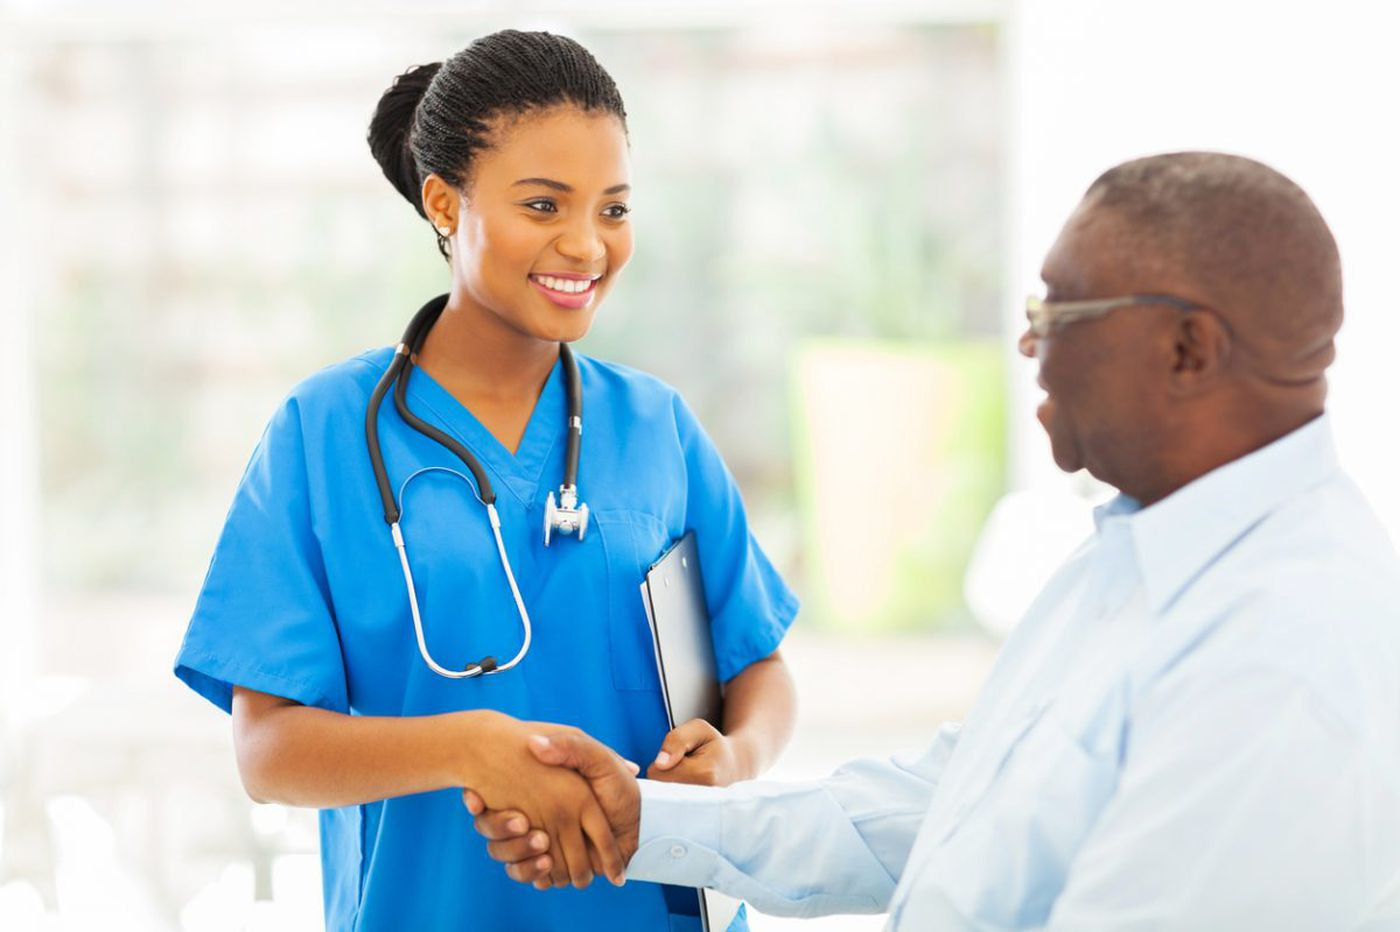 Black patients with a-fib at higher risk of stroke, Penn study finds